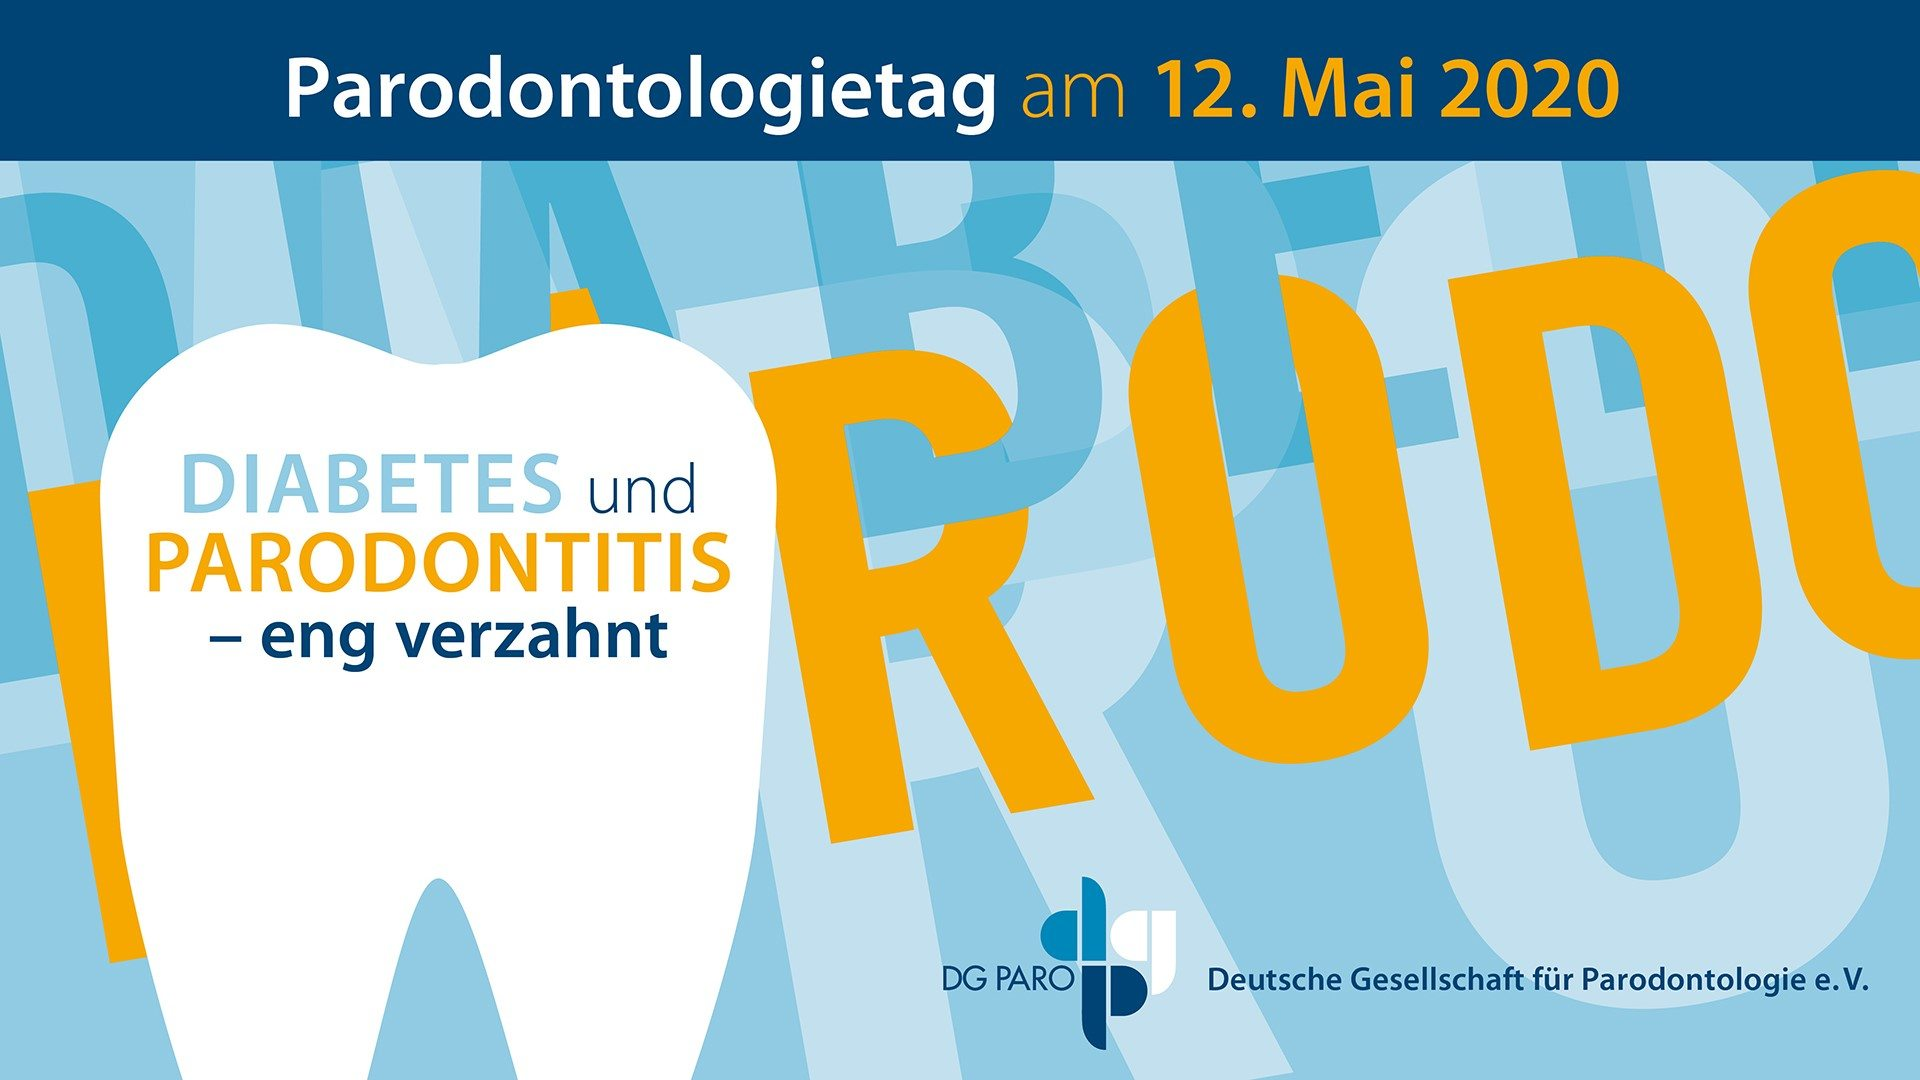 Parodontologietag 2020 Diabetes und Parodontitis Screen am 12. Mai 2020